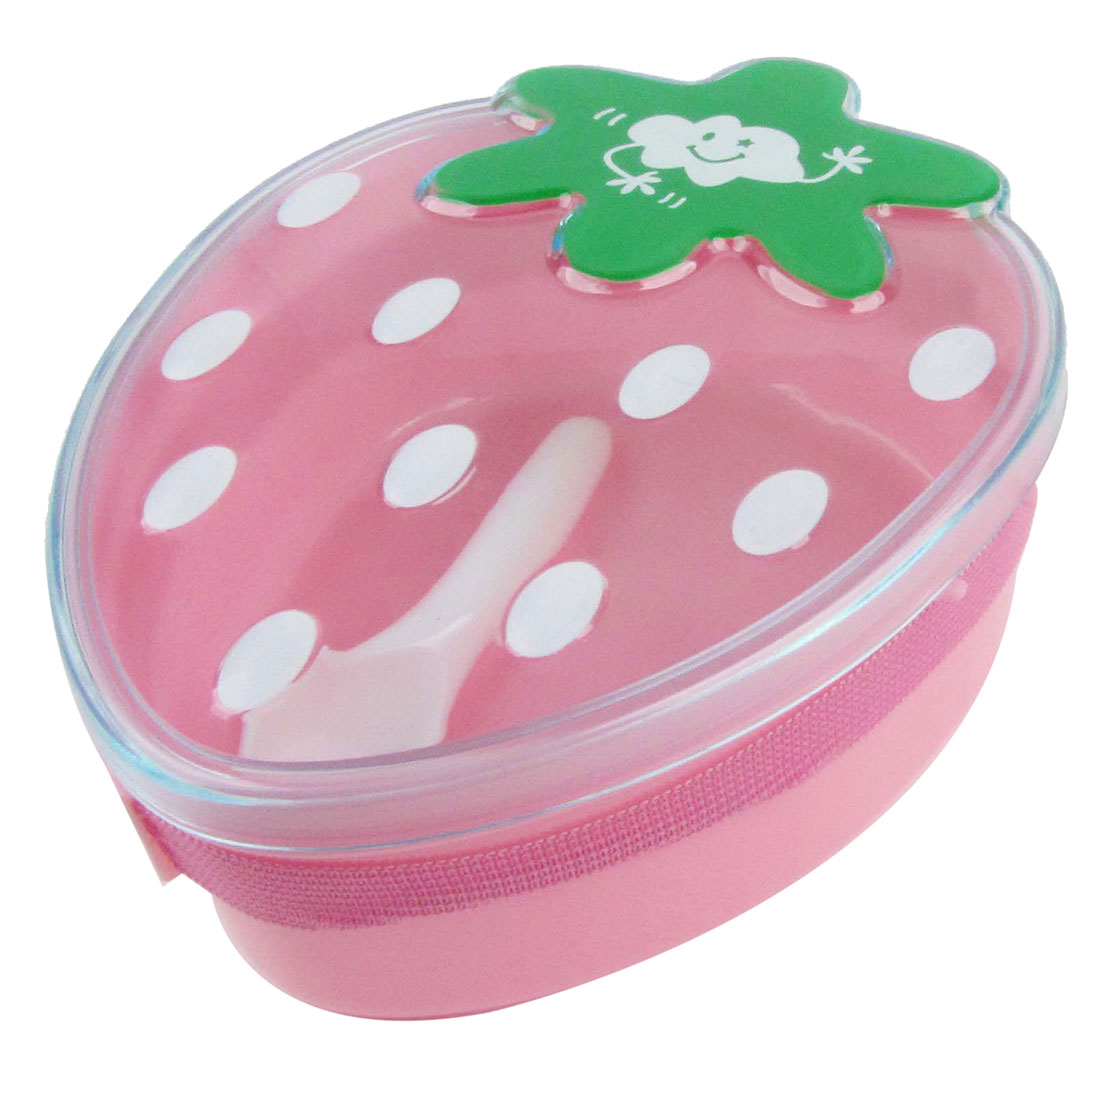 Portable Plastic Cartoon Strawberry Shaped Lunch Breakfast Carrying Box Pink